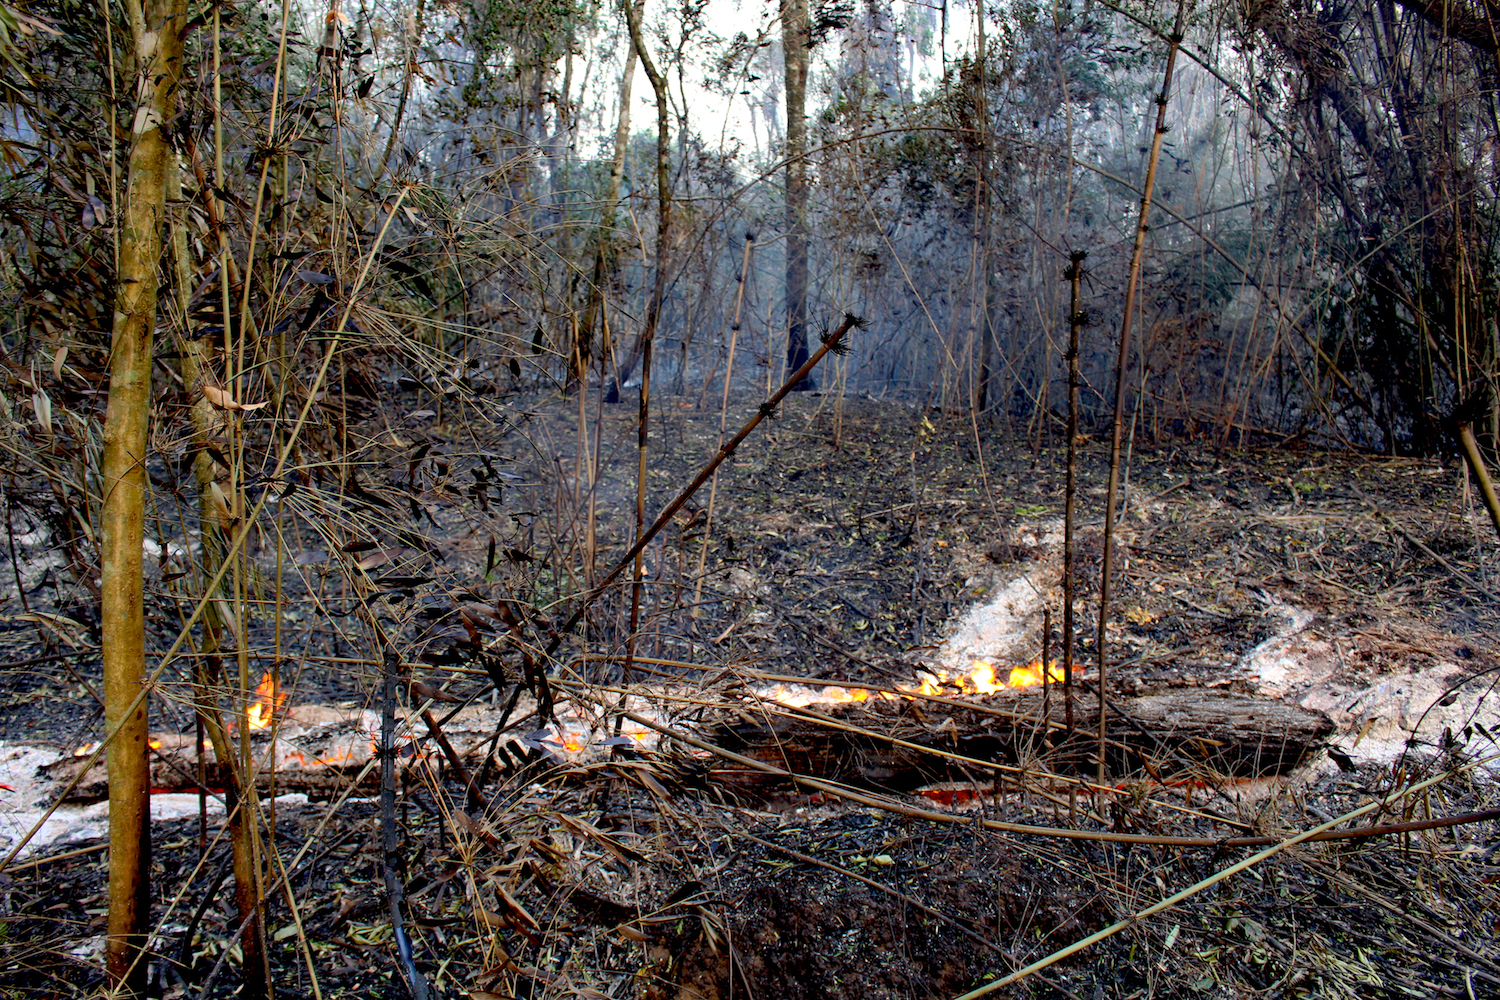 San Rafael Reserve was affected by fires in late 2020 at a scale that had previously not been recorded. Photo by Hugo Garay/WWF.